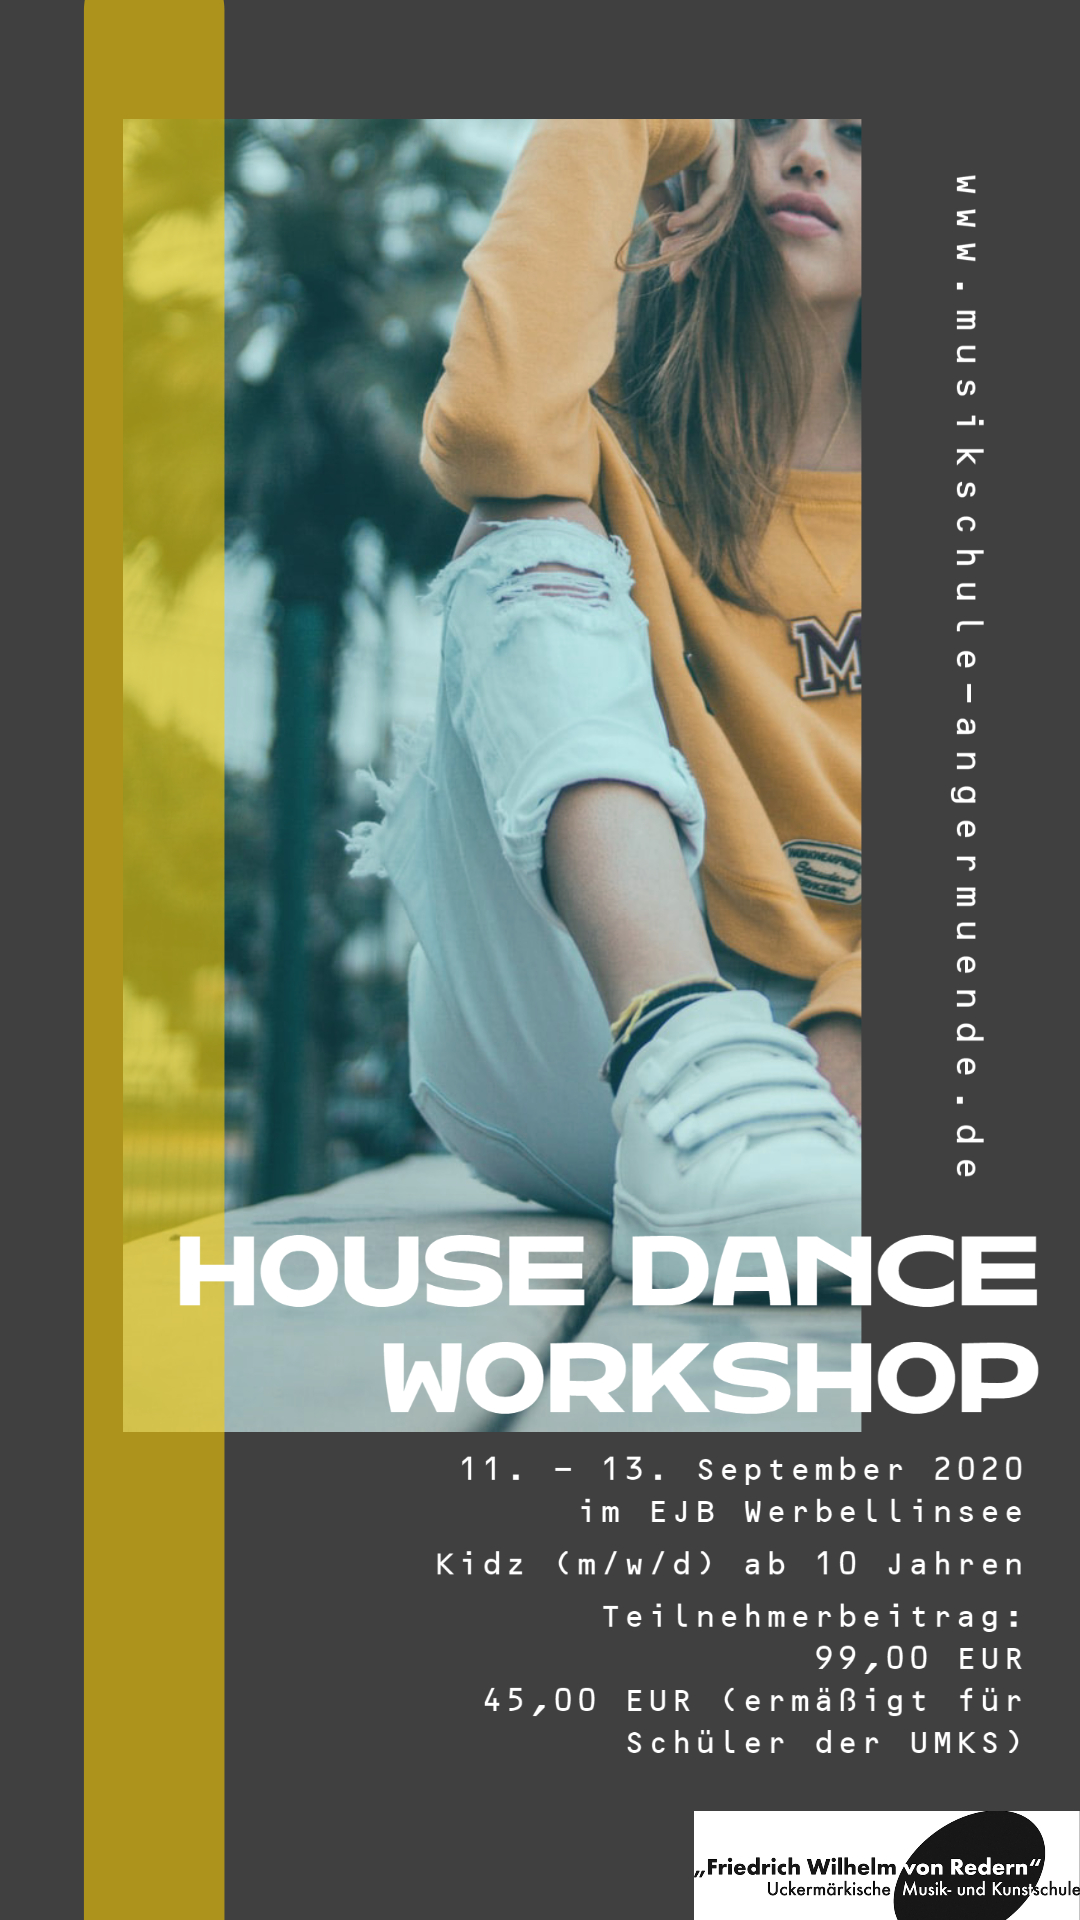 House Dance Workshop